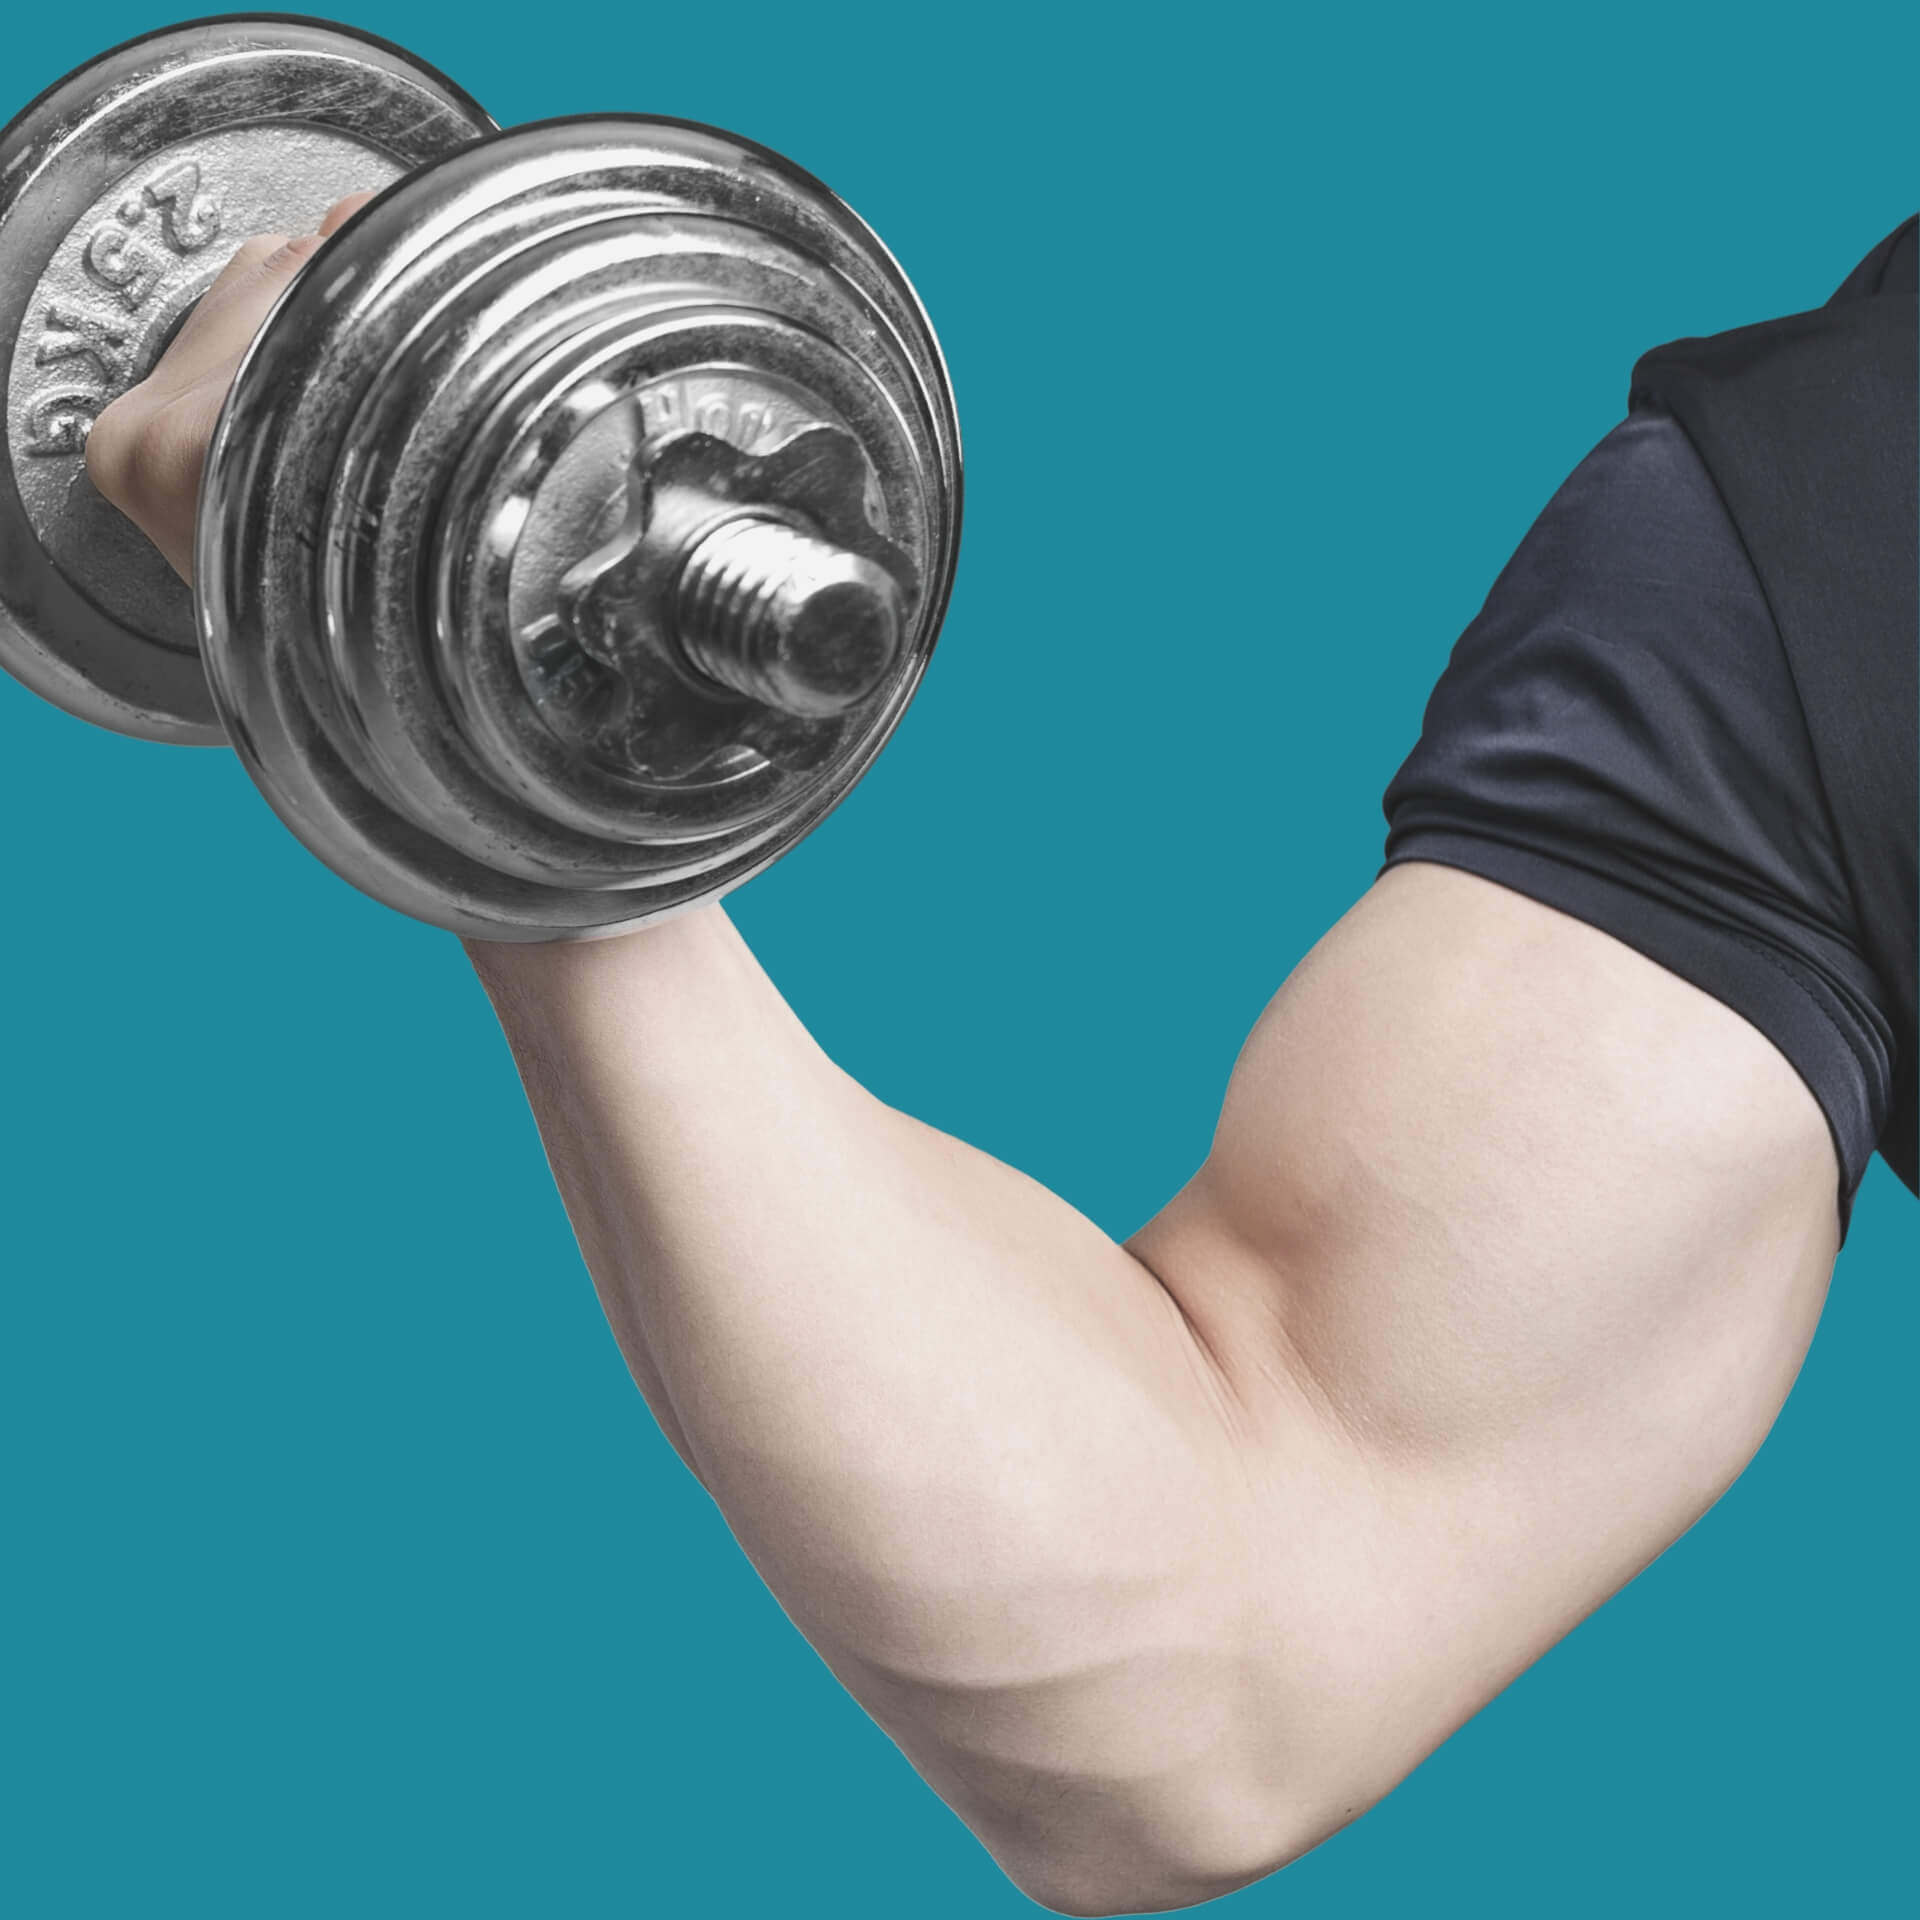 branding strategy benefits: arm with large muscles holding up a large dumbbell